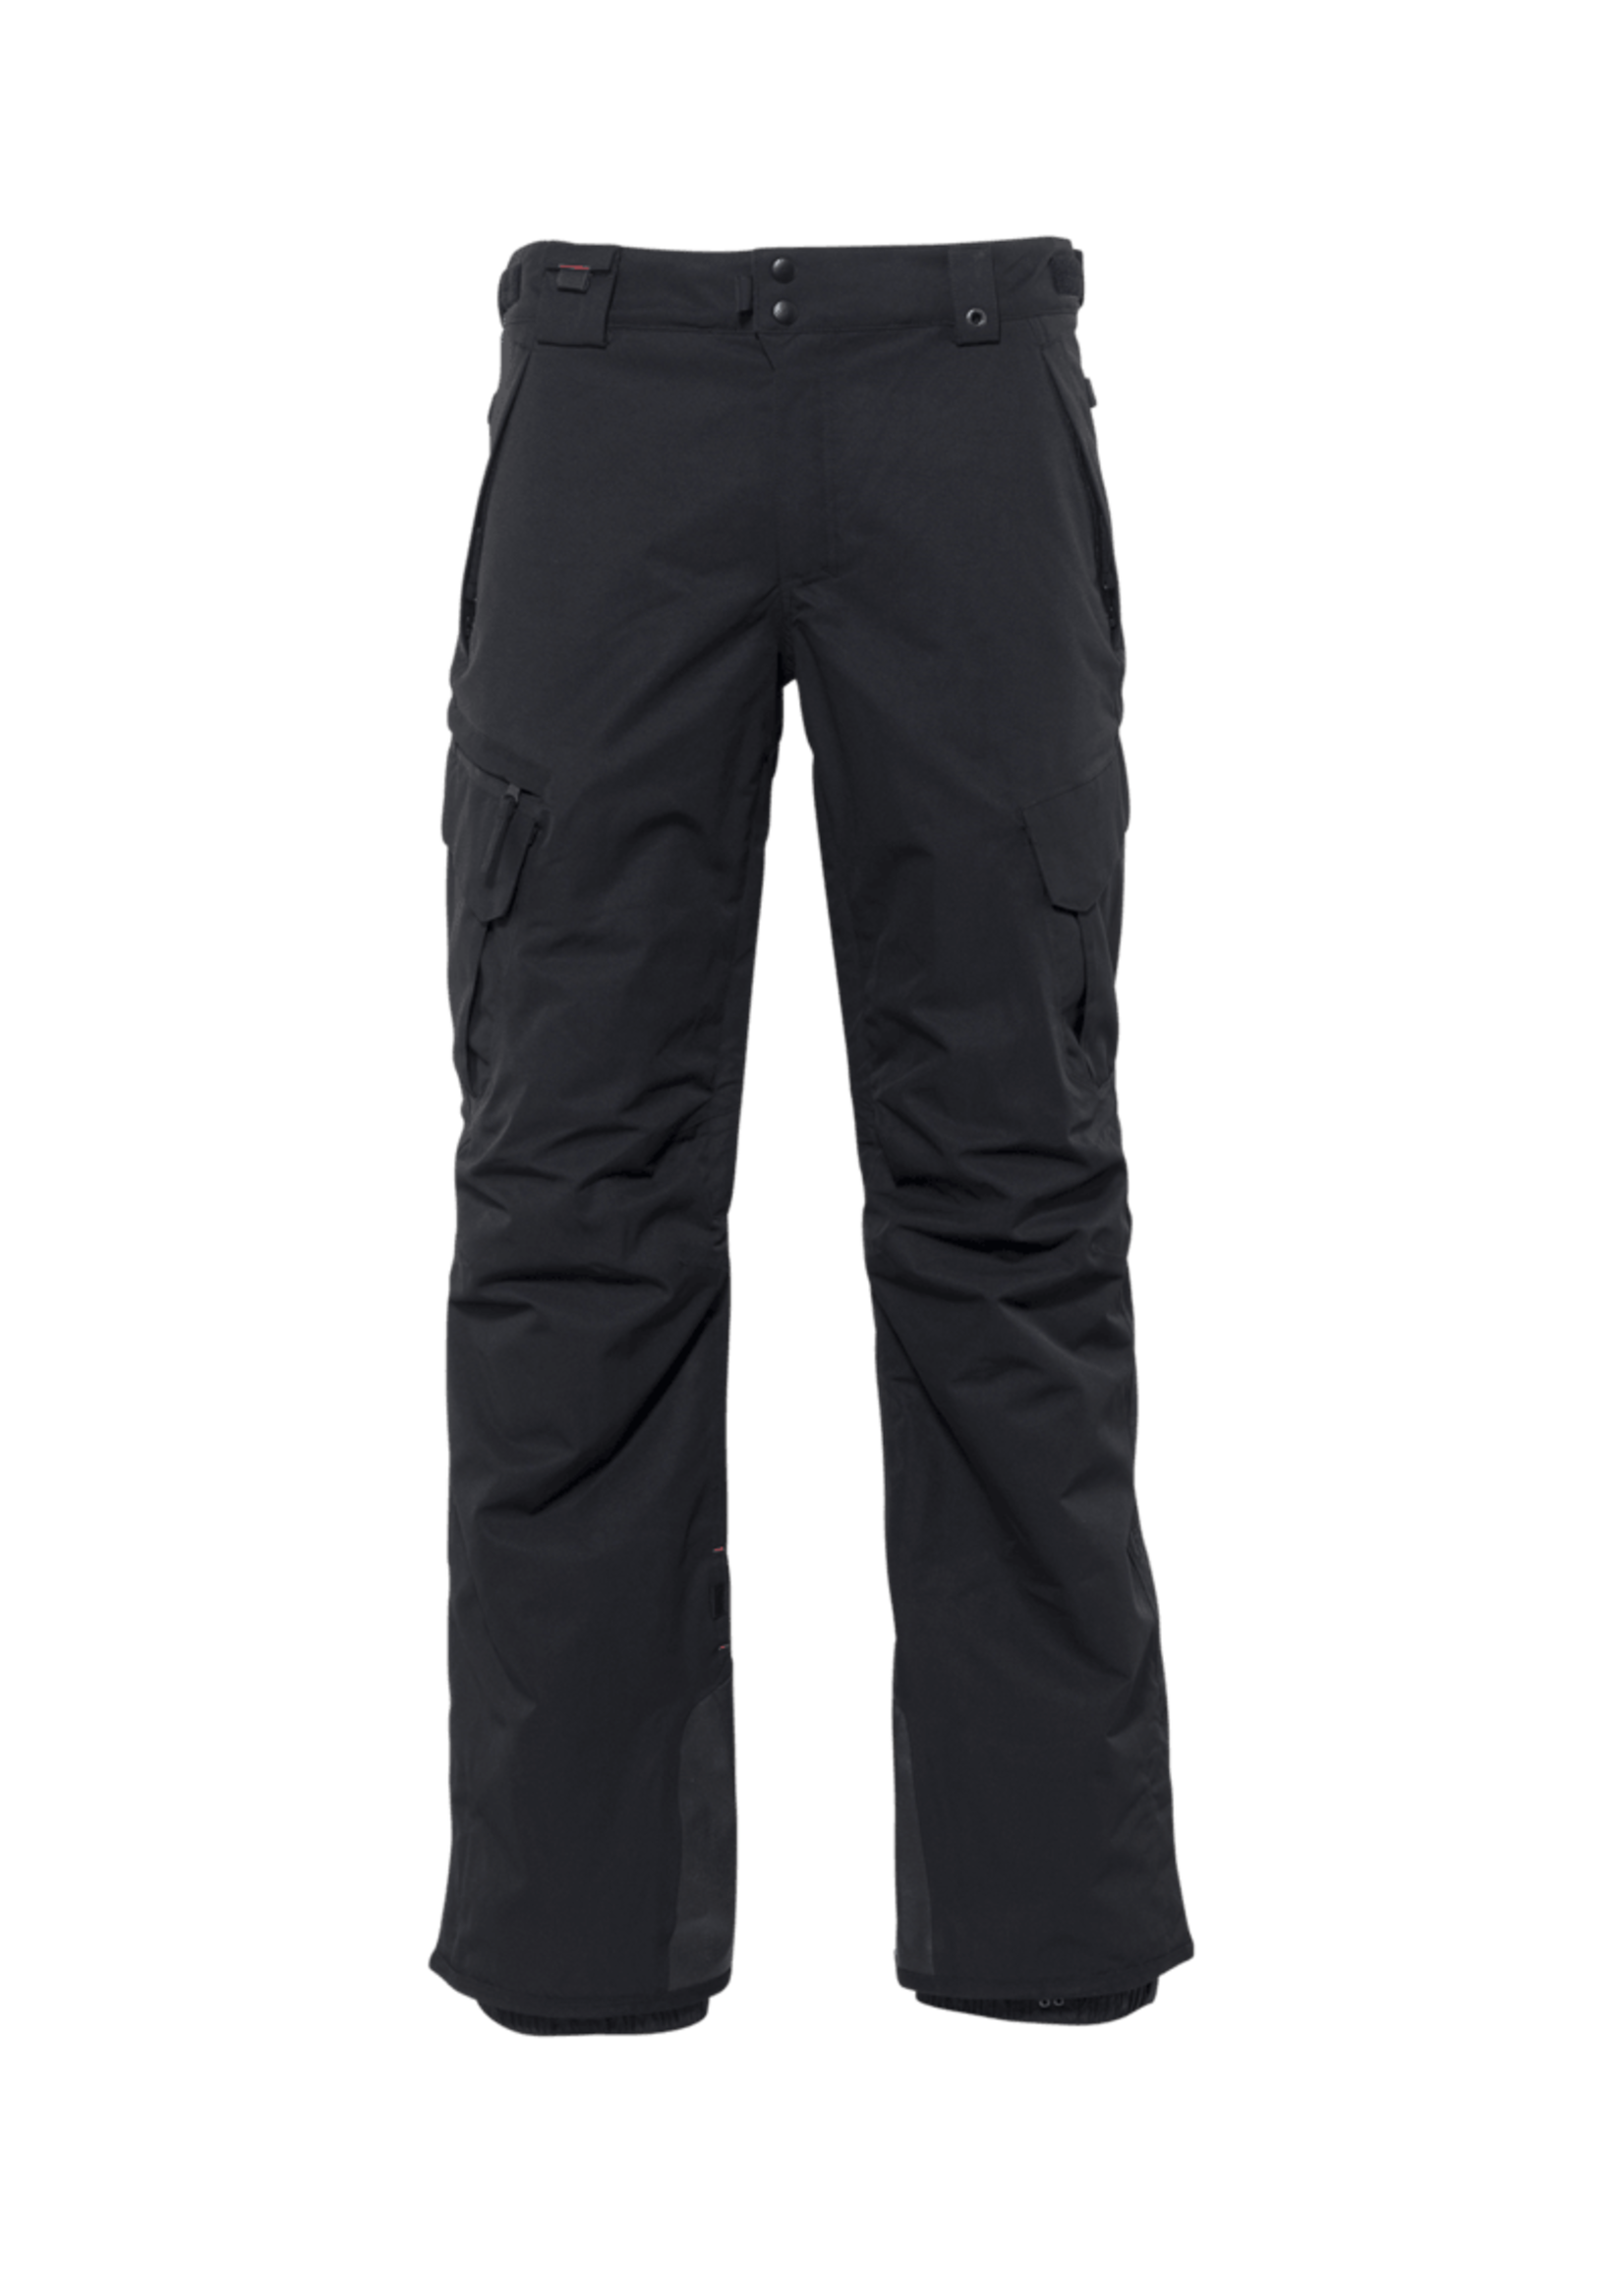 686 686 Smarty 3-in-1 Cargo Pant 2020